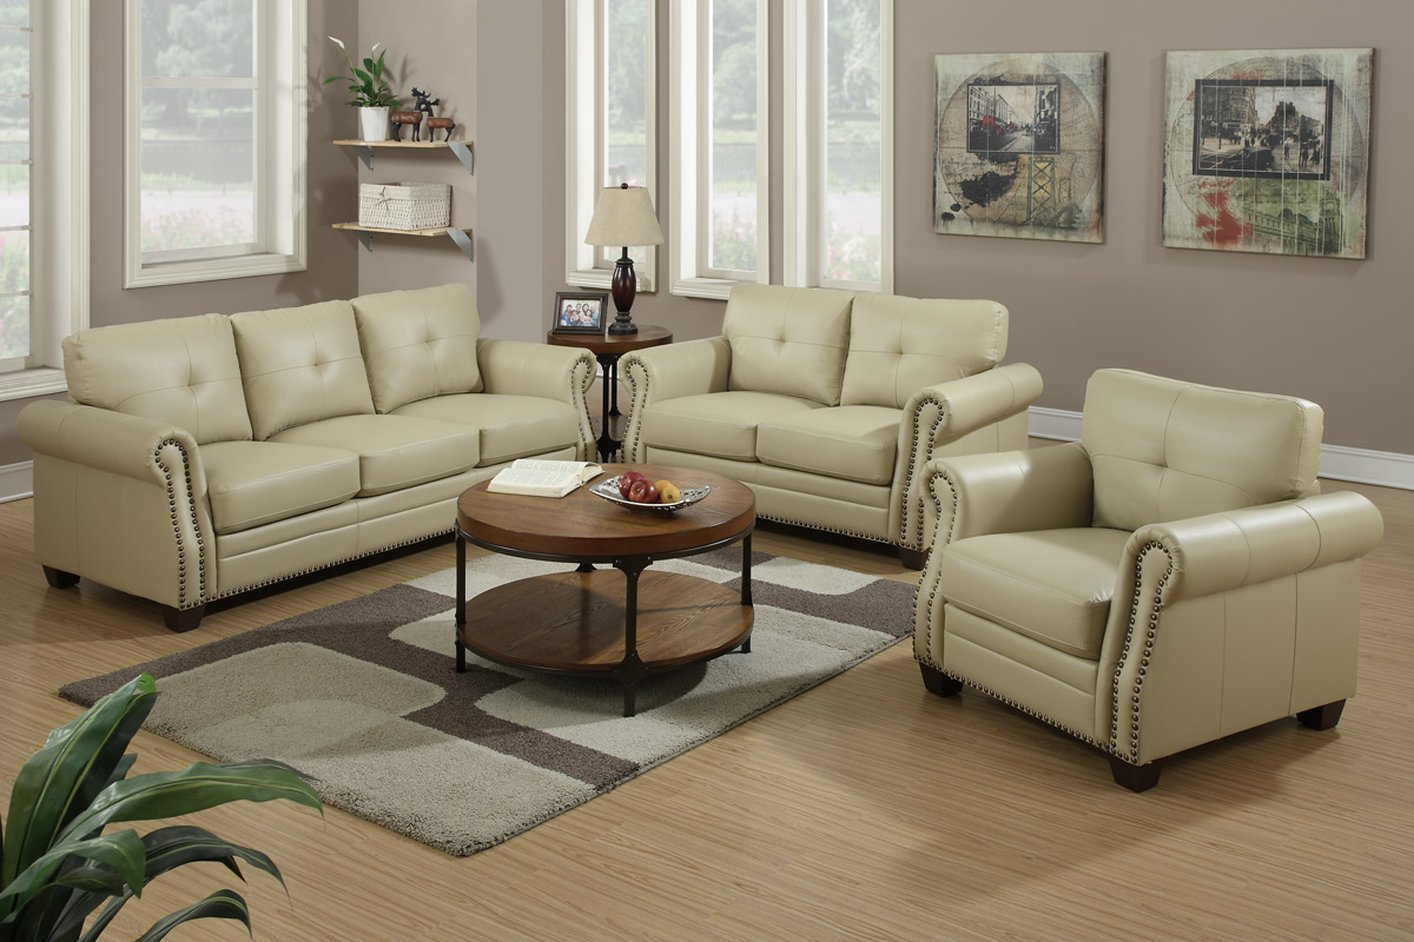 Poundex F7784 Beige Leather Sofa And Loveseat Set Steal